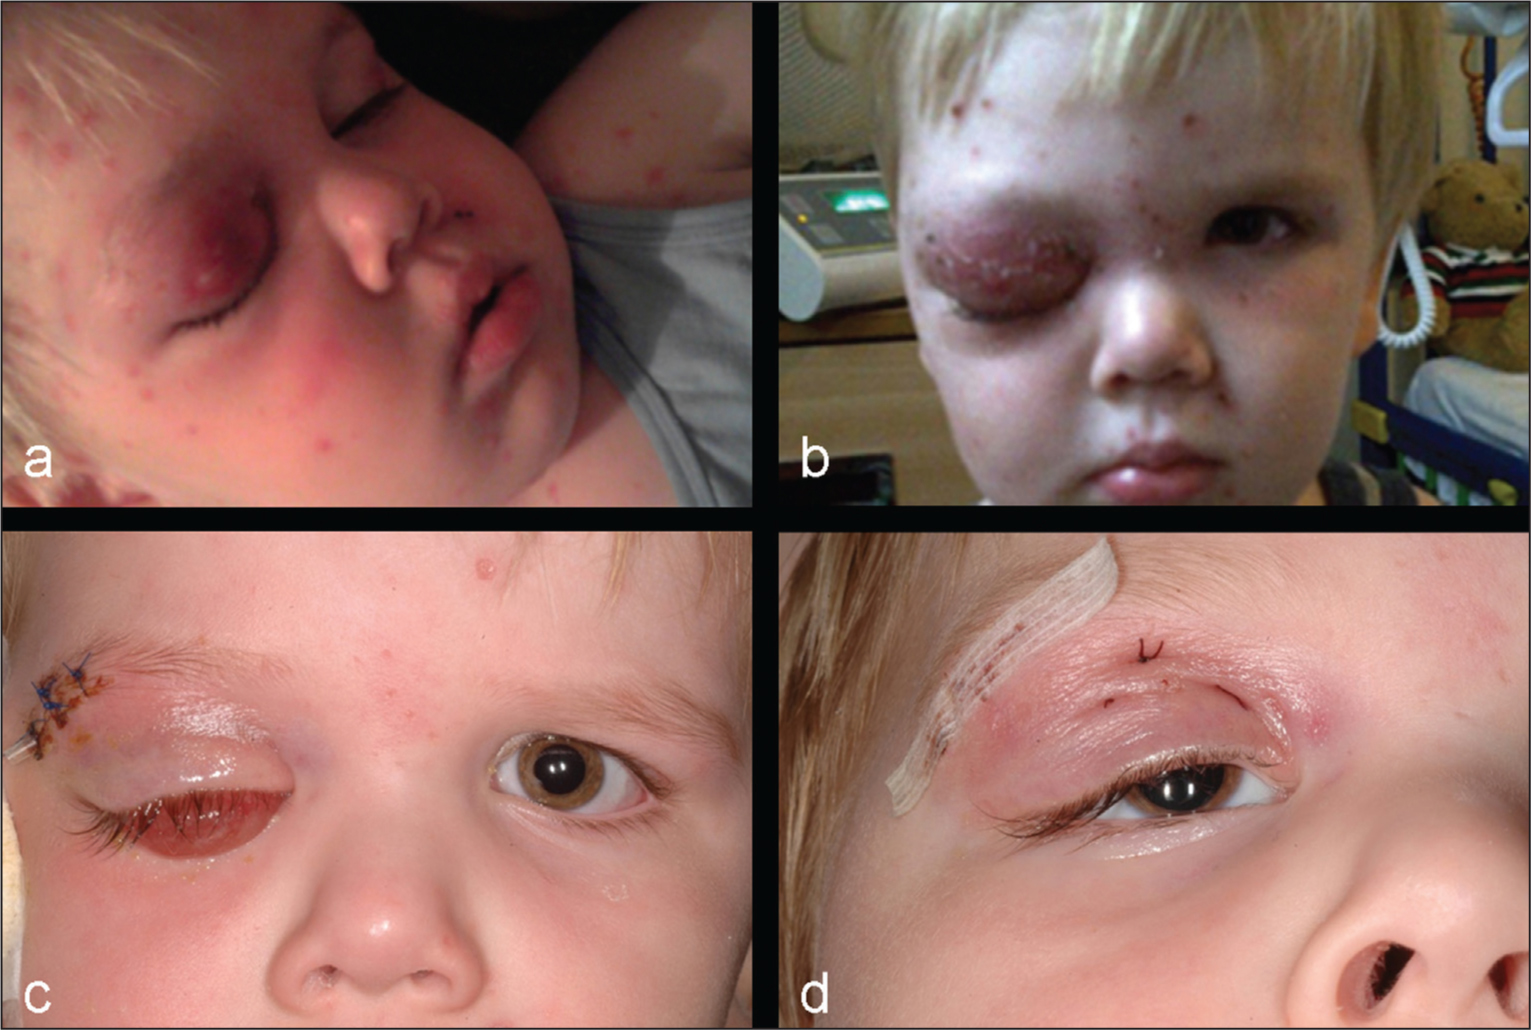 Color photographs of the patient (A) 2 hours after onset of onset of cellulitis, (B) 7 days after commencing intravenous antibiotic treatment, and (C) 2 and (D) 10 days following treatment with systemic intravenous steroids. (D) The 'chin up position' is shown due to the degree of postoperative ptosis.